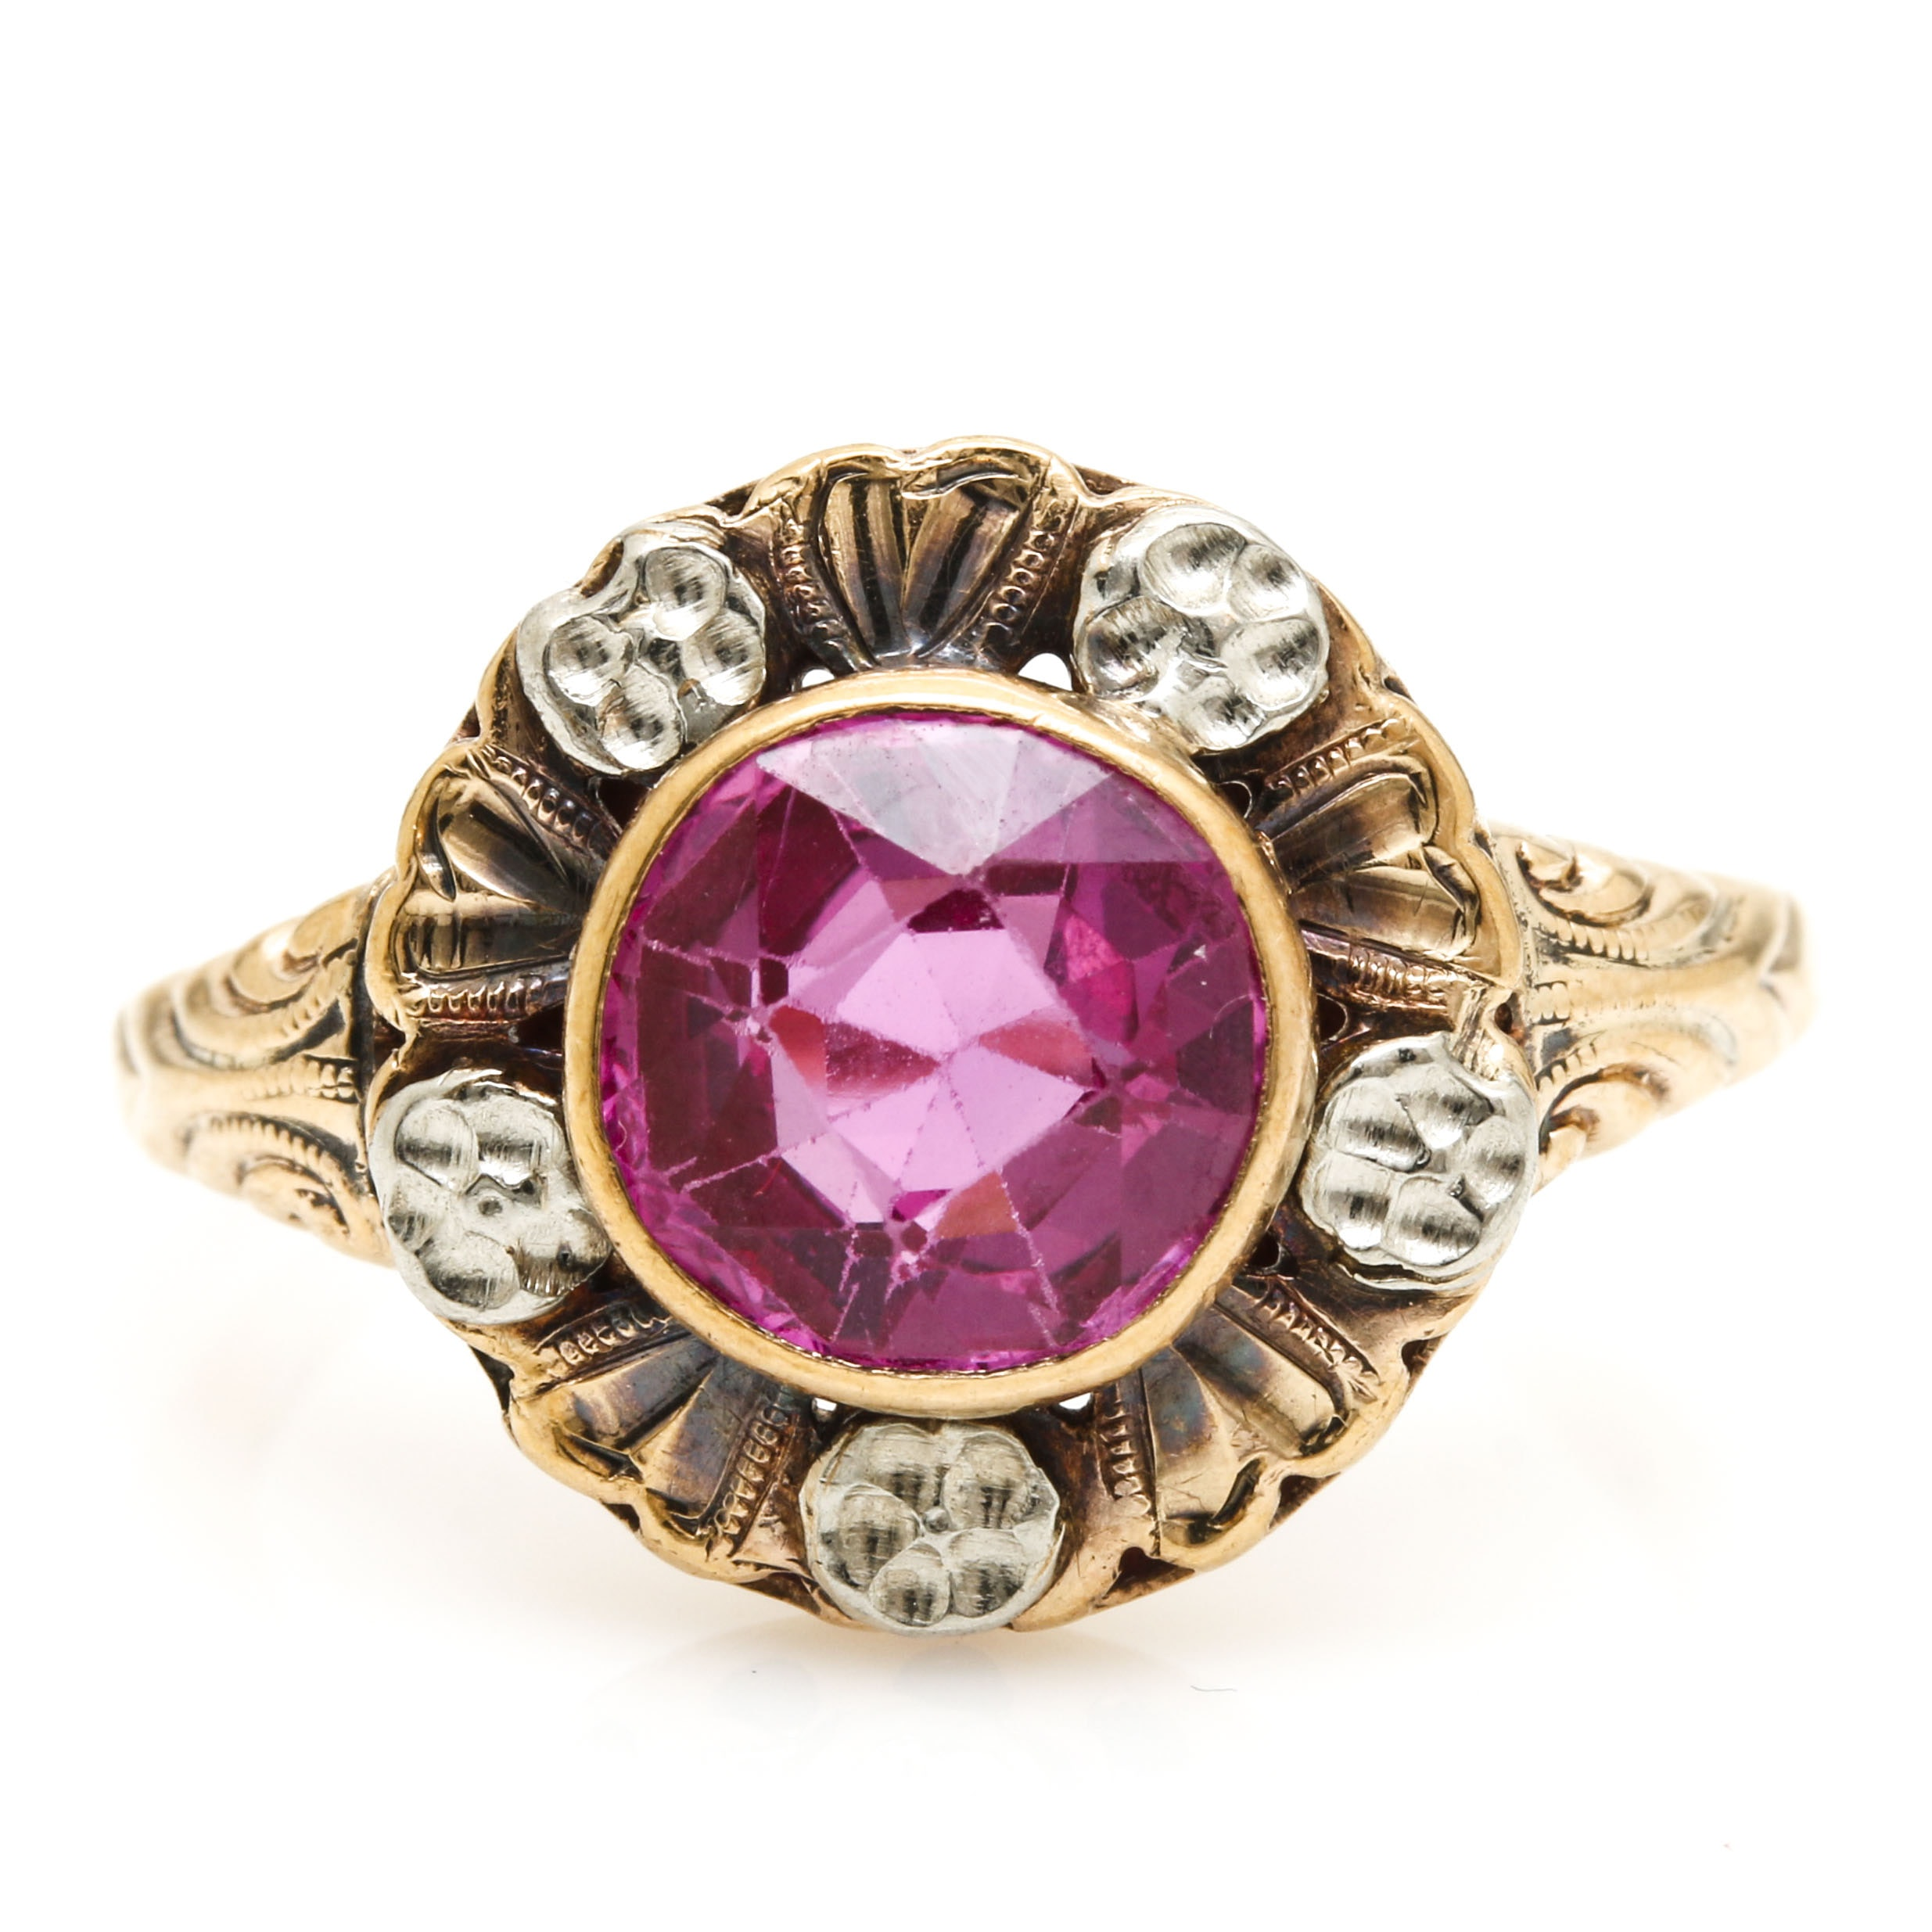 Vintage 10K Yellow Gold and Sapphire Ring